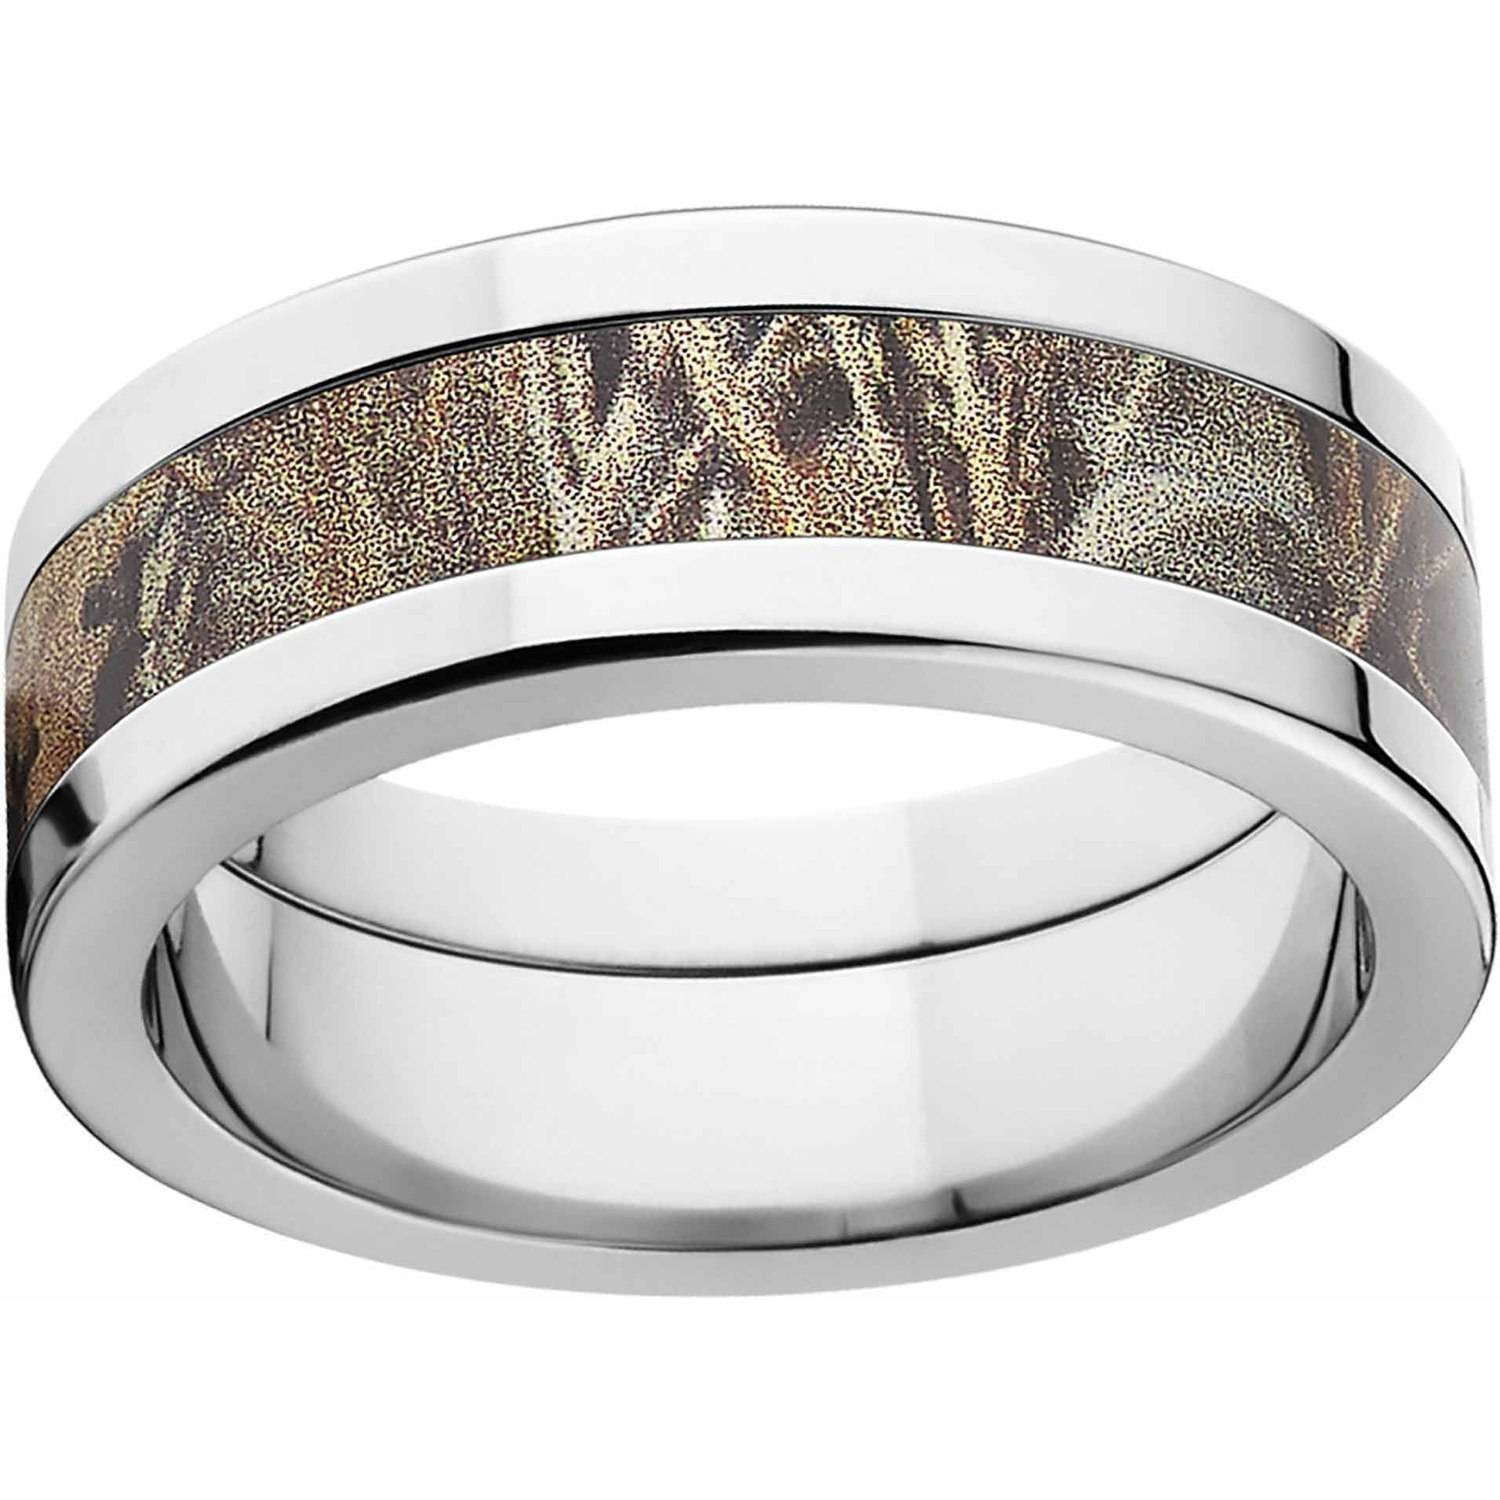 Mens Wedding Rings At Walmart Awesome Mothers Day Rings | Fineryus Within Men's Wedding Bands At Walmart (View 9 of 15)